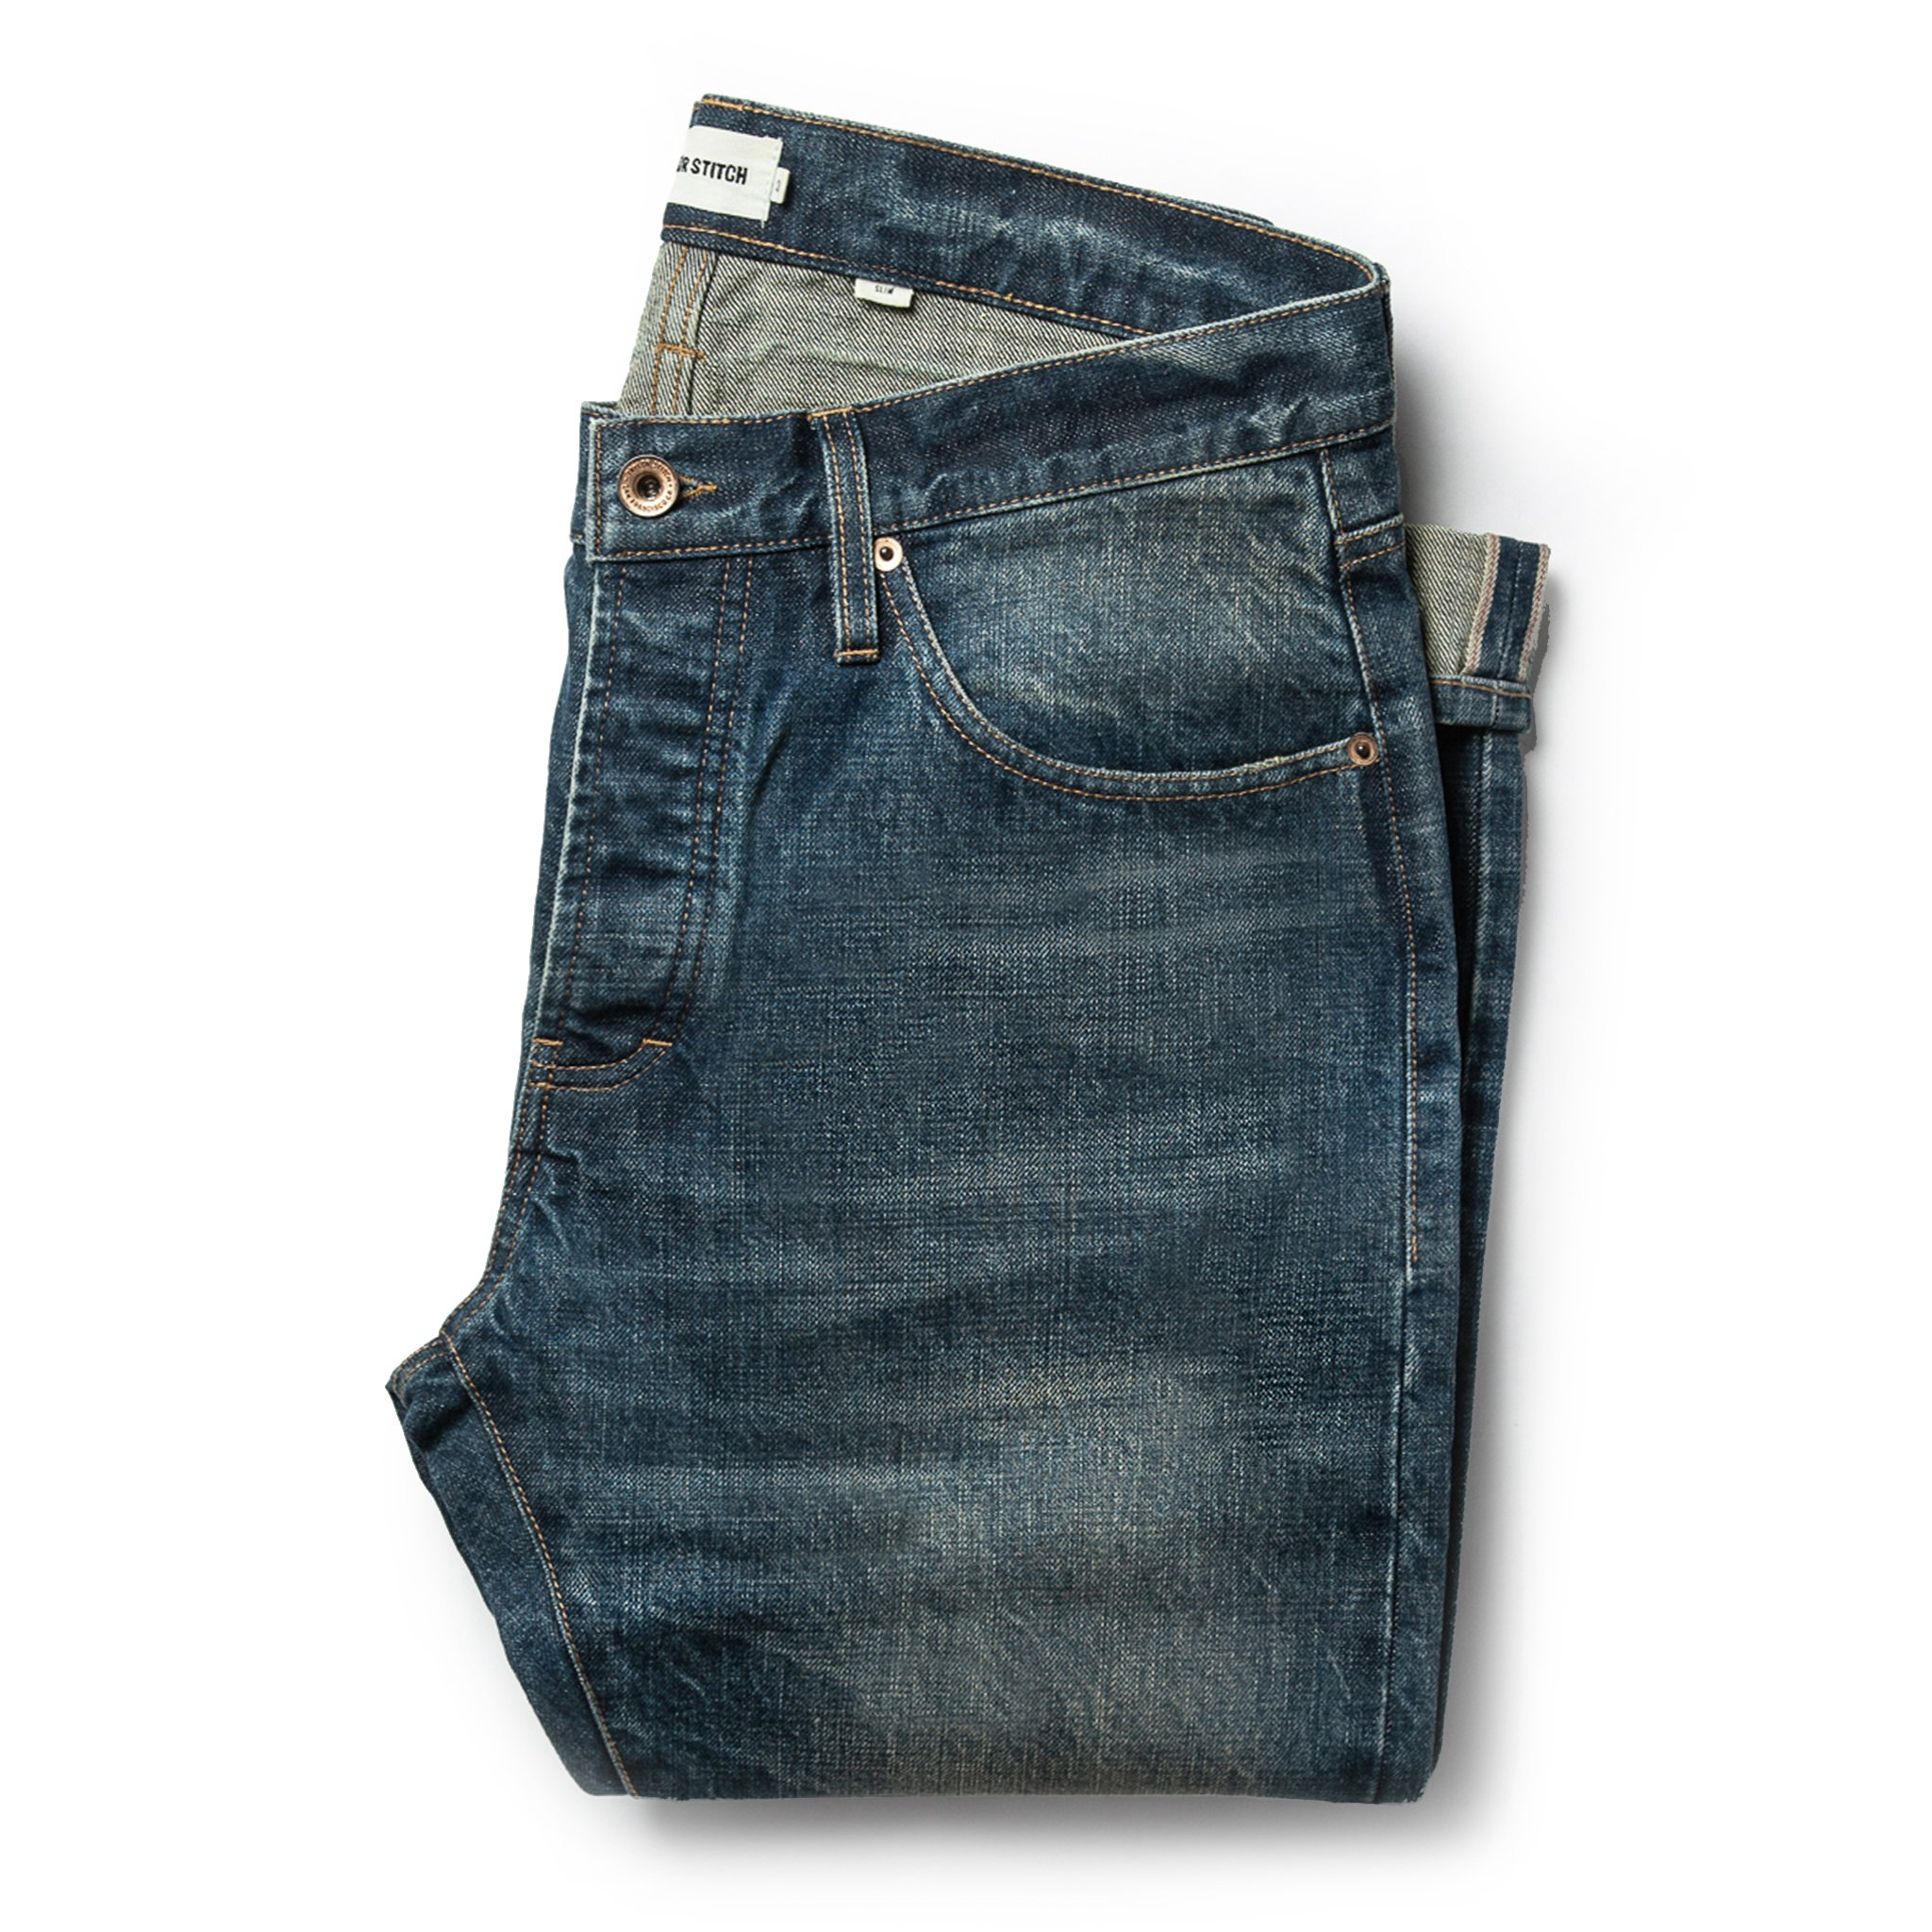 Taylor Stitch Slim Jeans in Organic Selvage